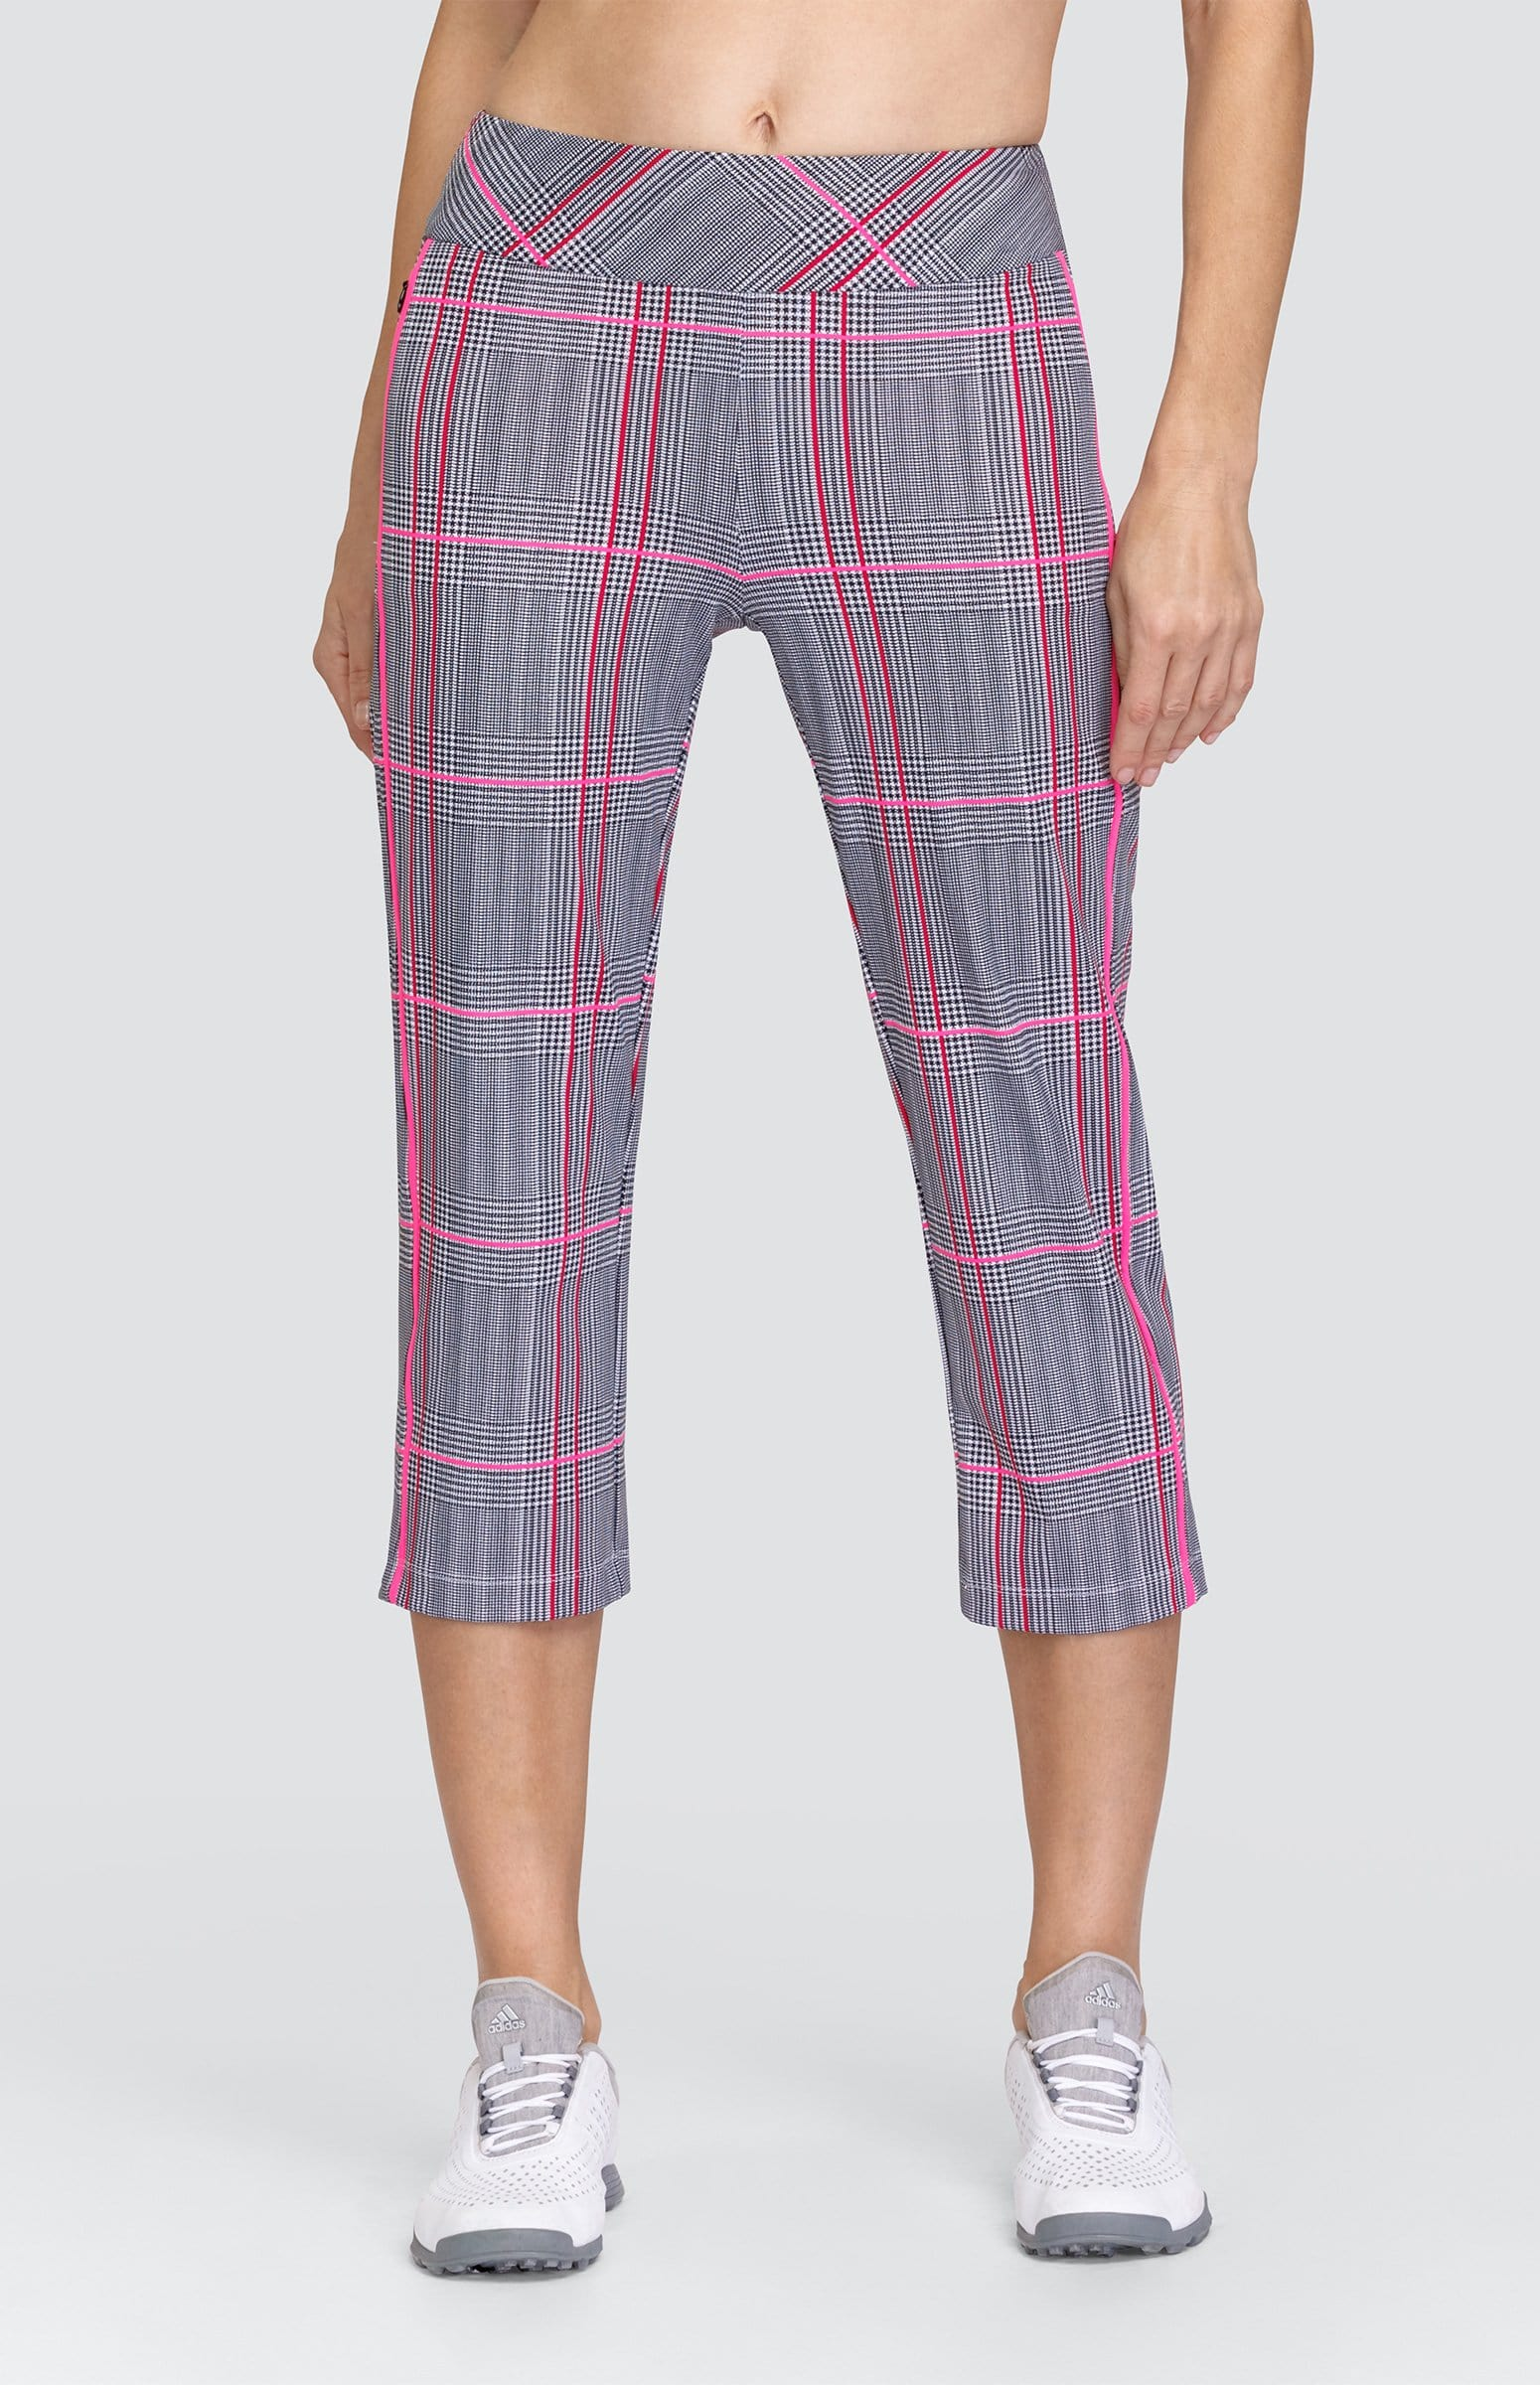 Milan Capri - Parisian Plaid